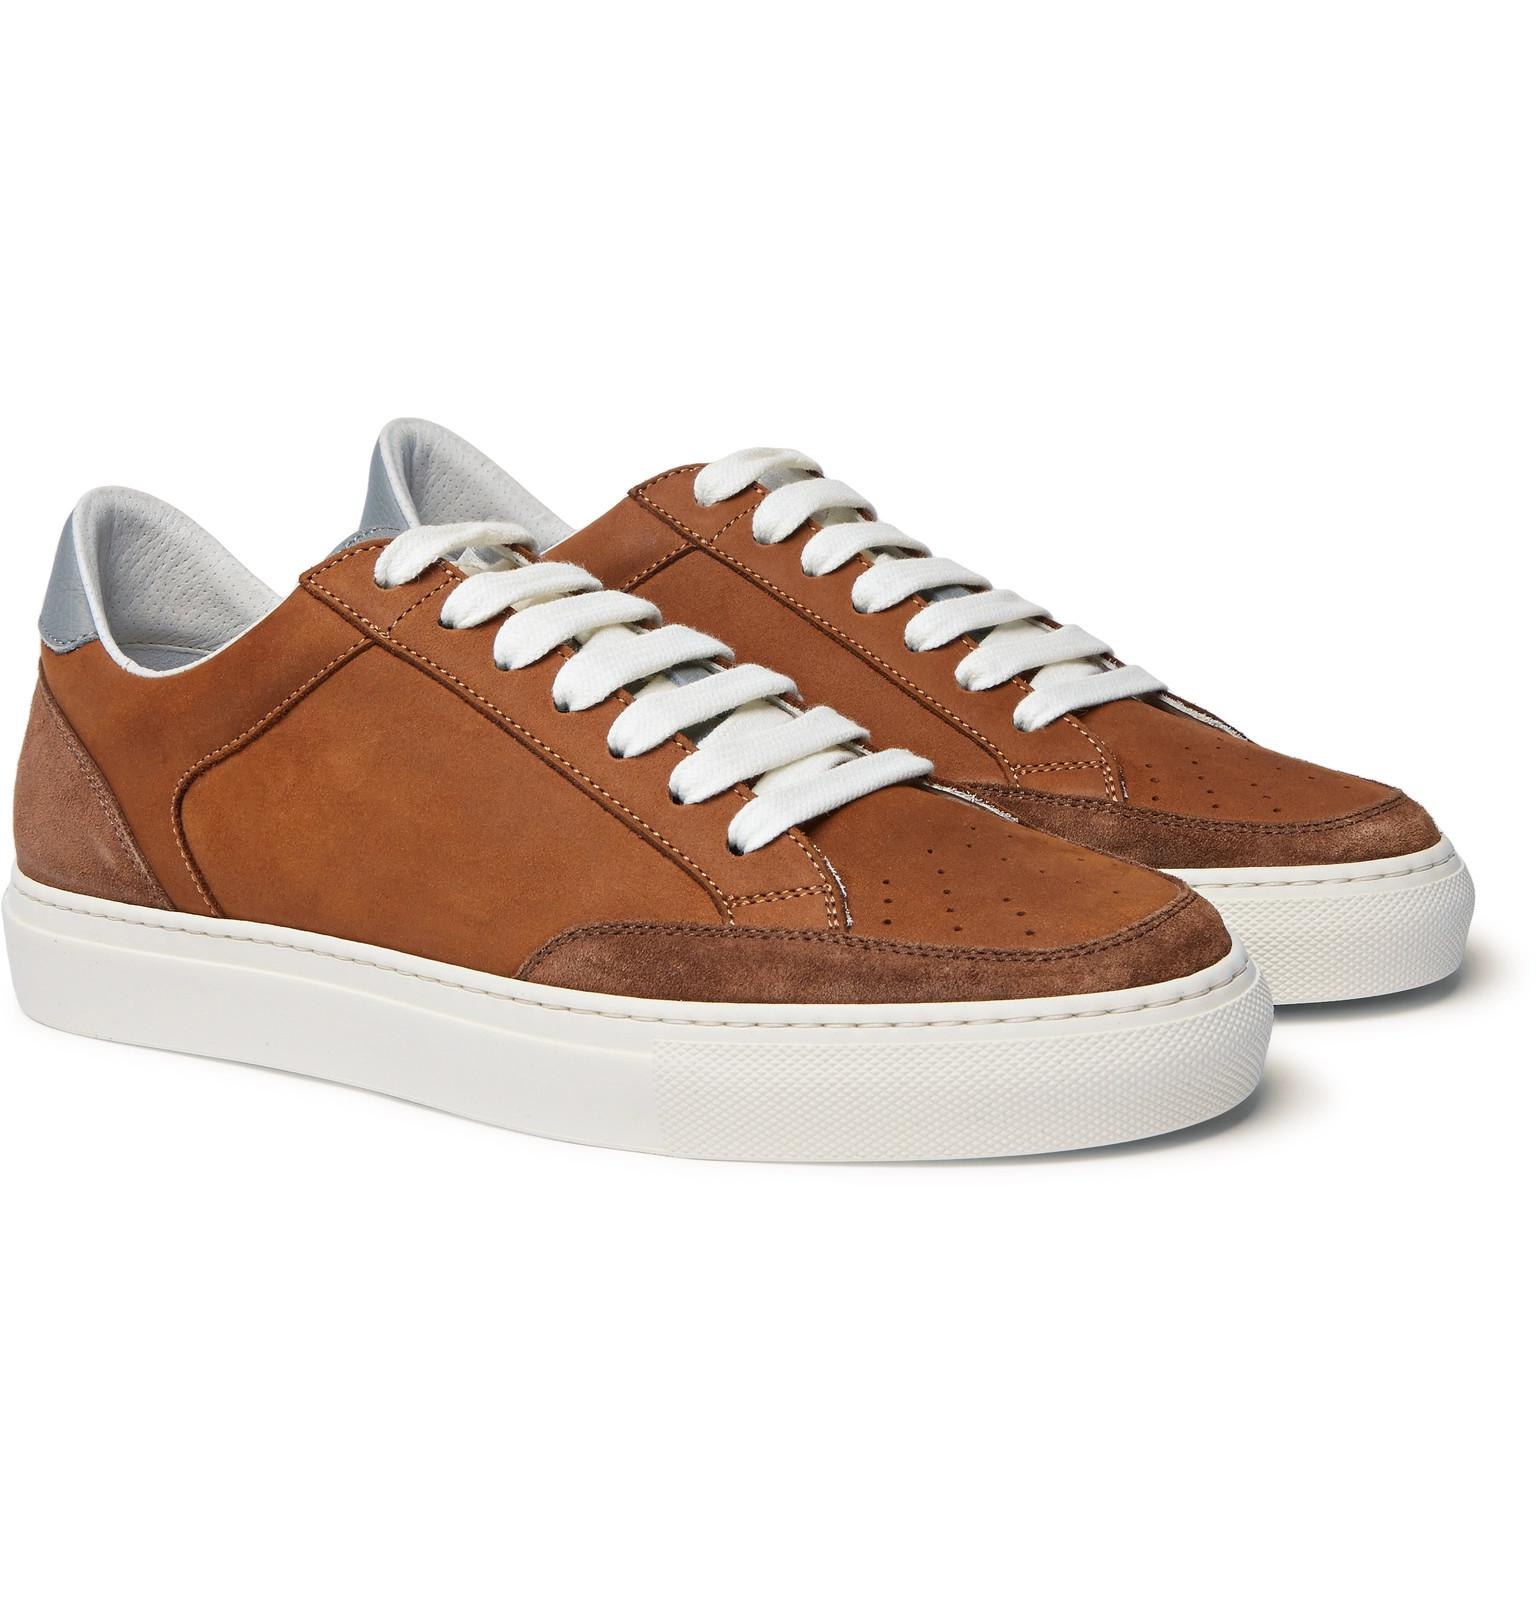 Crono Suede And Full-grain Leather Sneakers Brunello Cucinelli 3bJ35Vx5hr